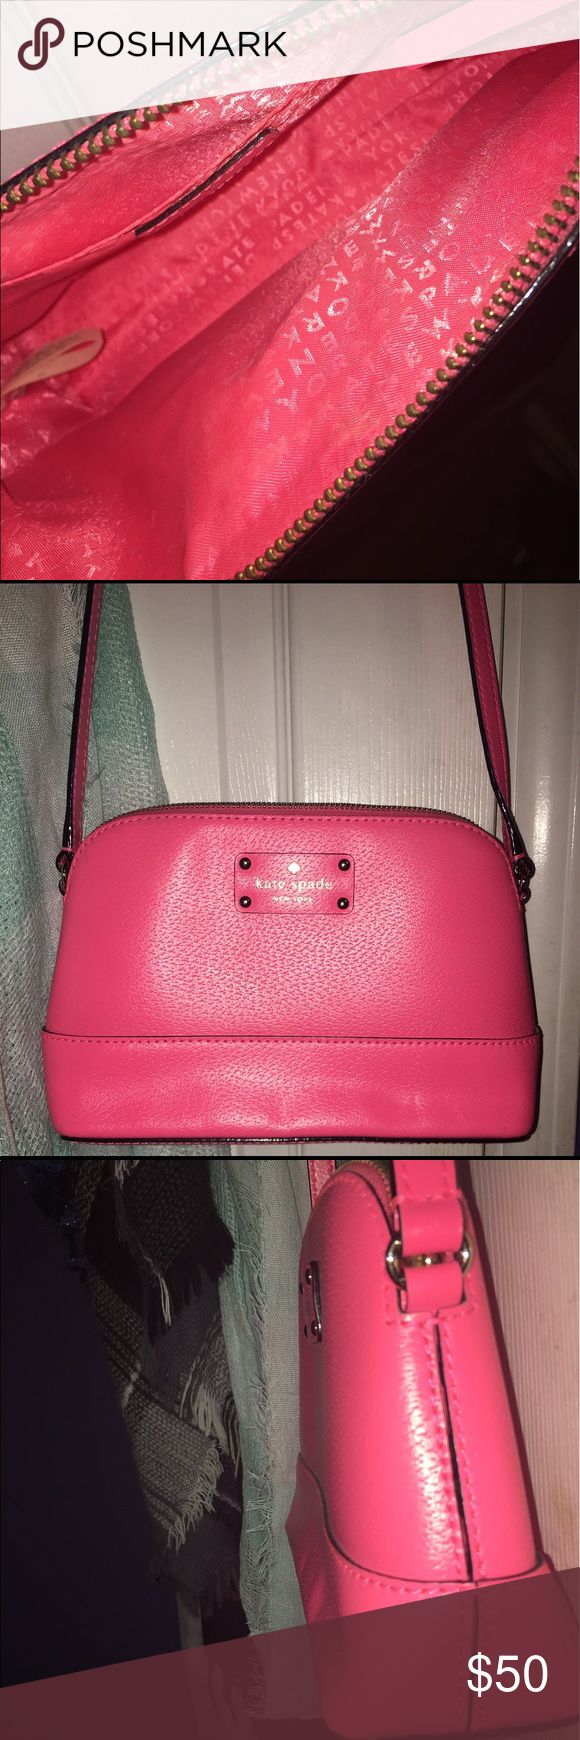 Kate Spade Small hot pink purse only used once kate spade Bags Shoulder Bags